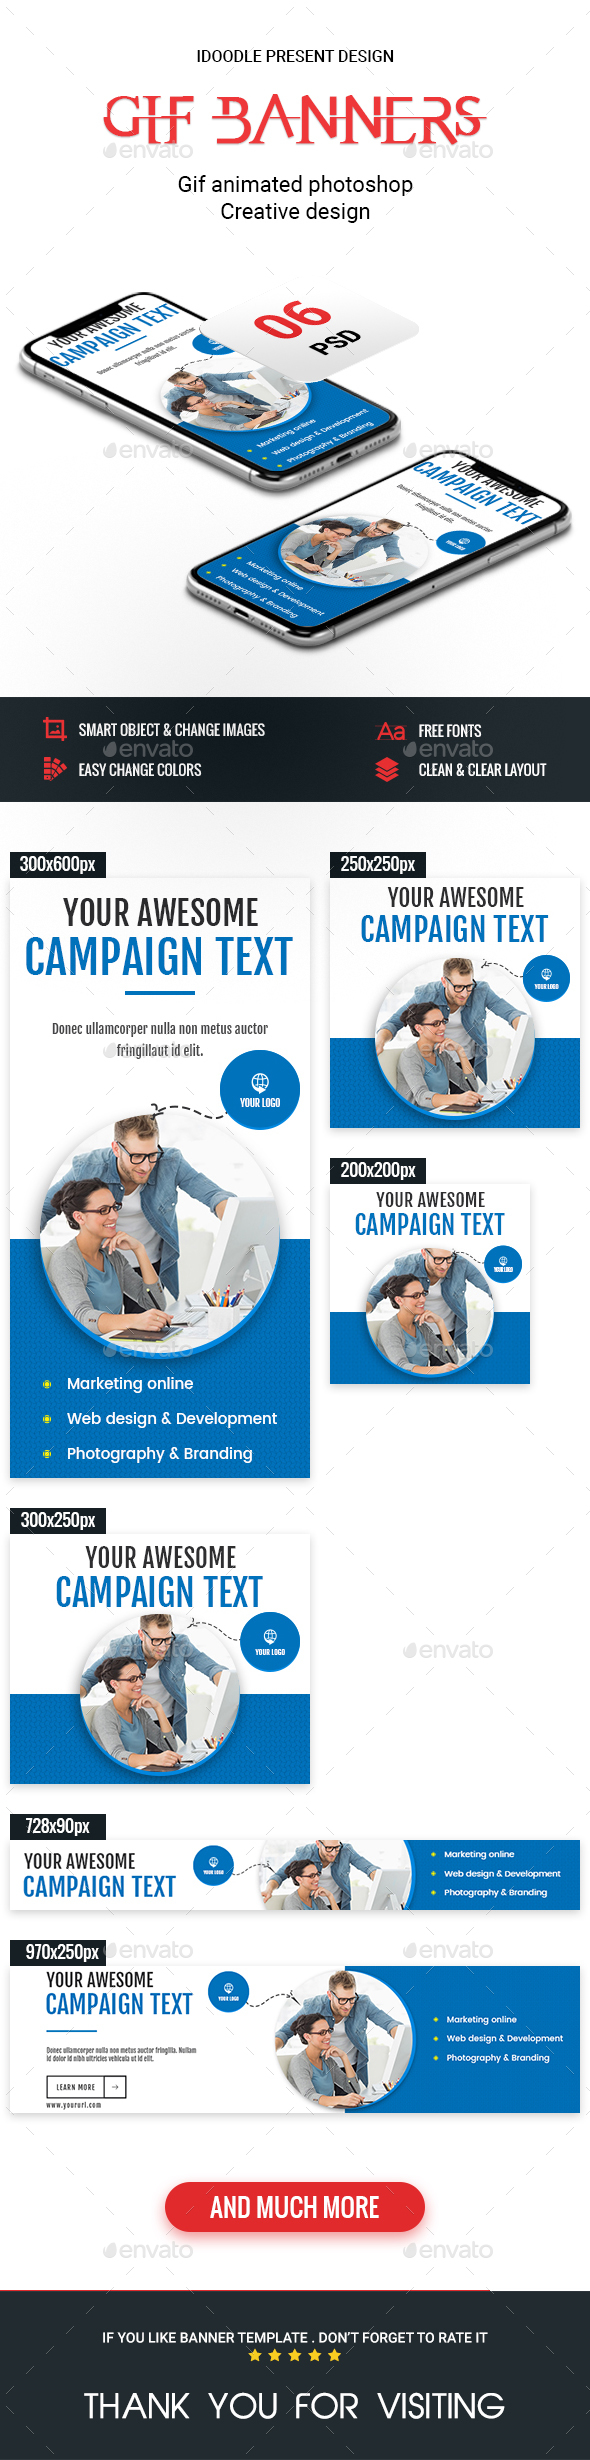 Animated GIF Banner Ads - Multipurpose Banner Ads - Banners & Ads Web Elements